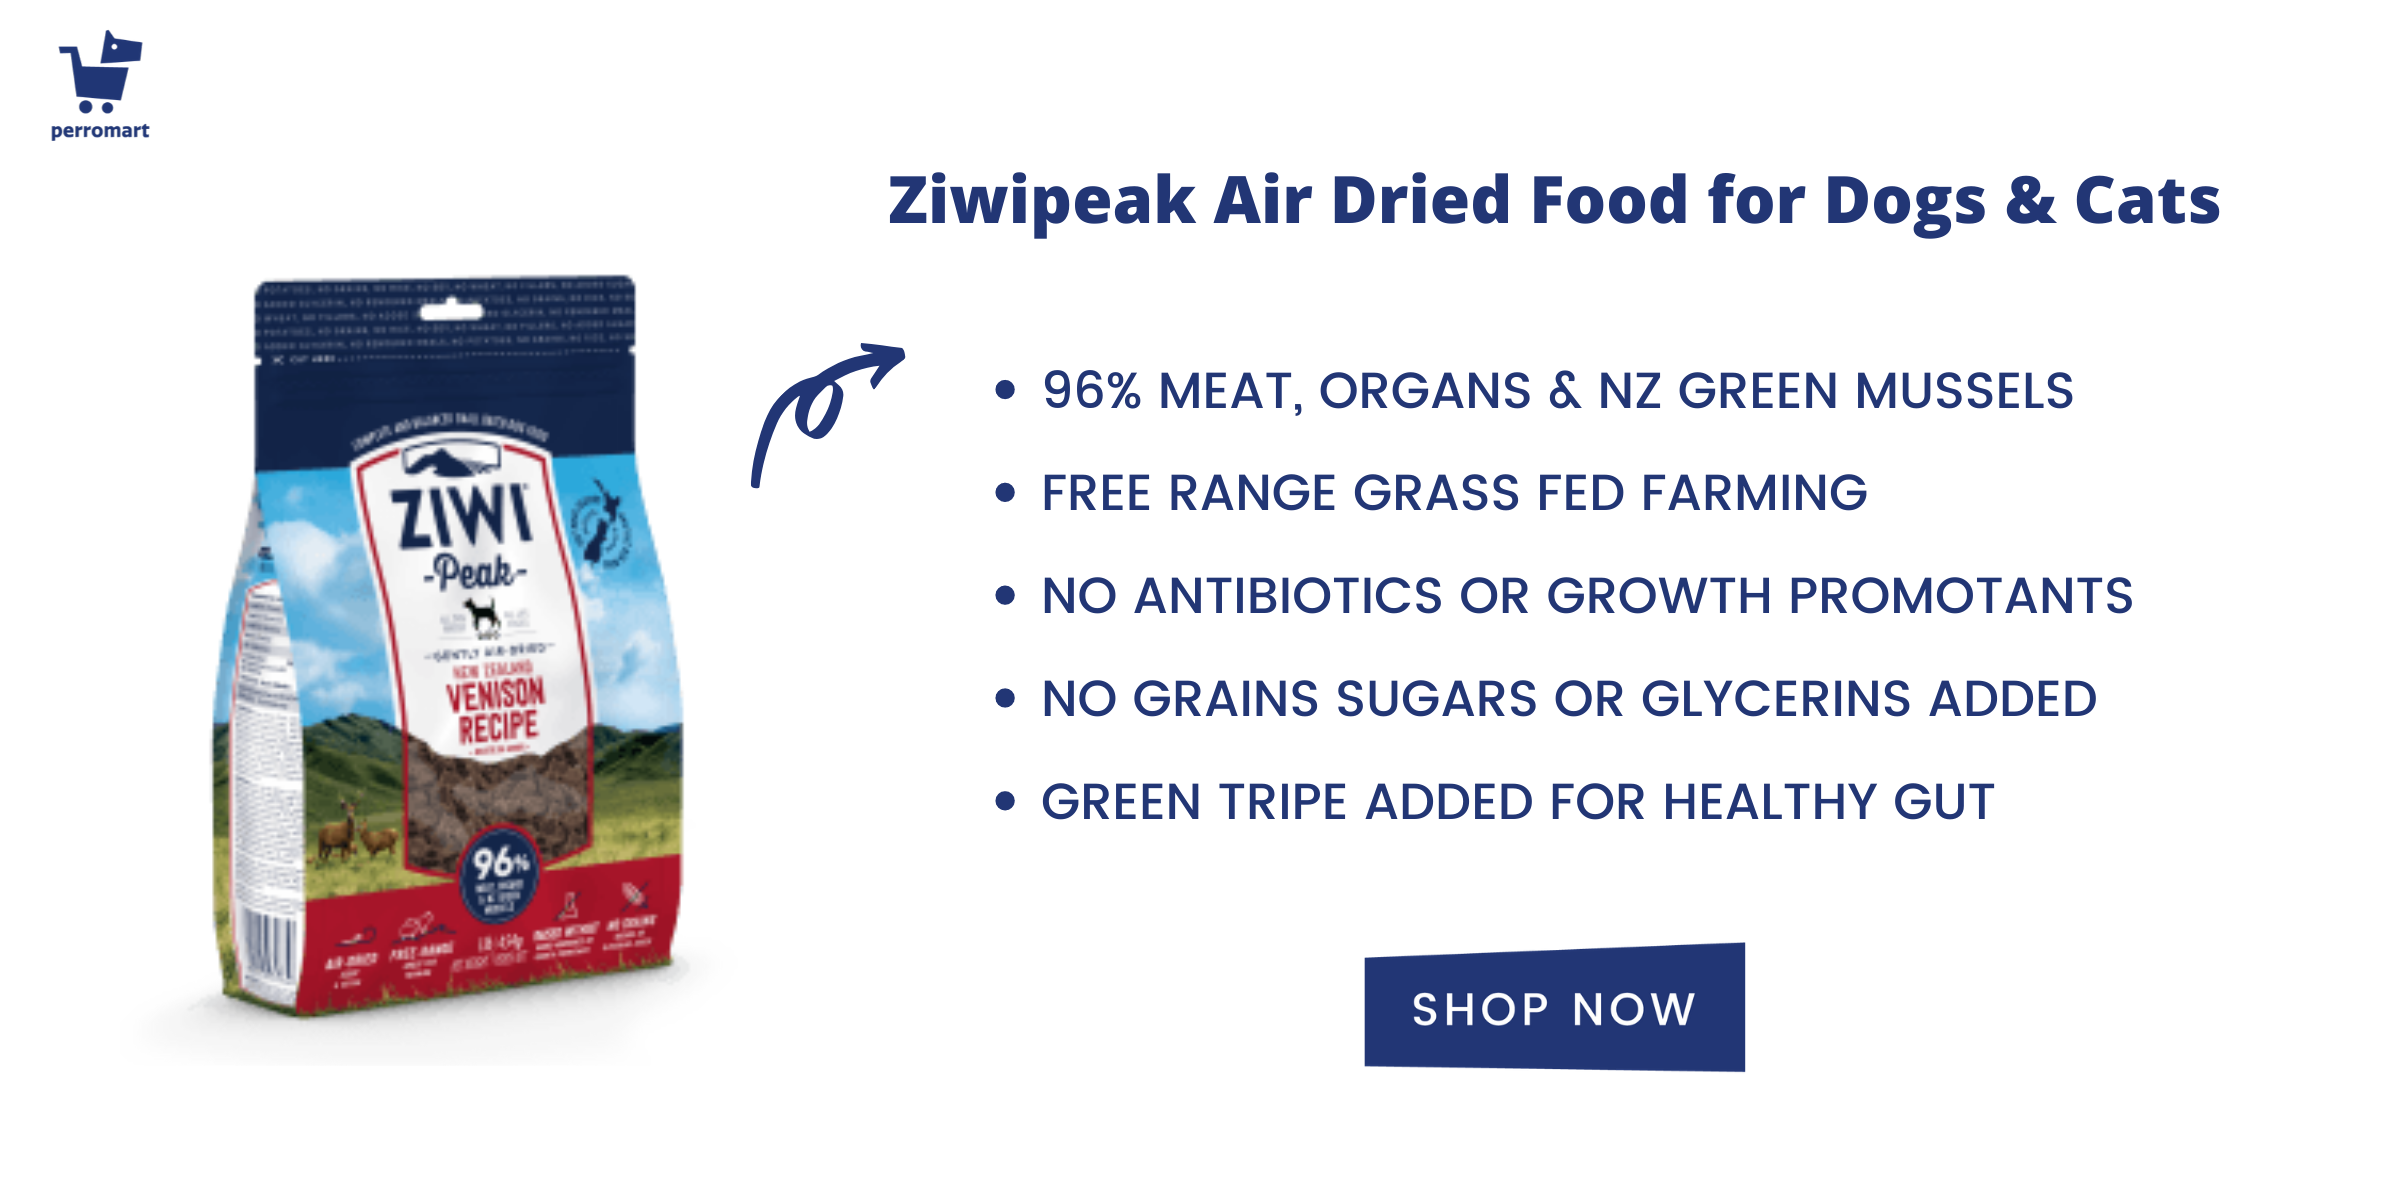 ziwipeak air dried food for dogs and cats